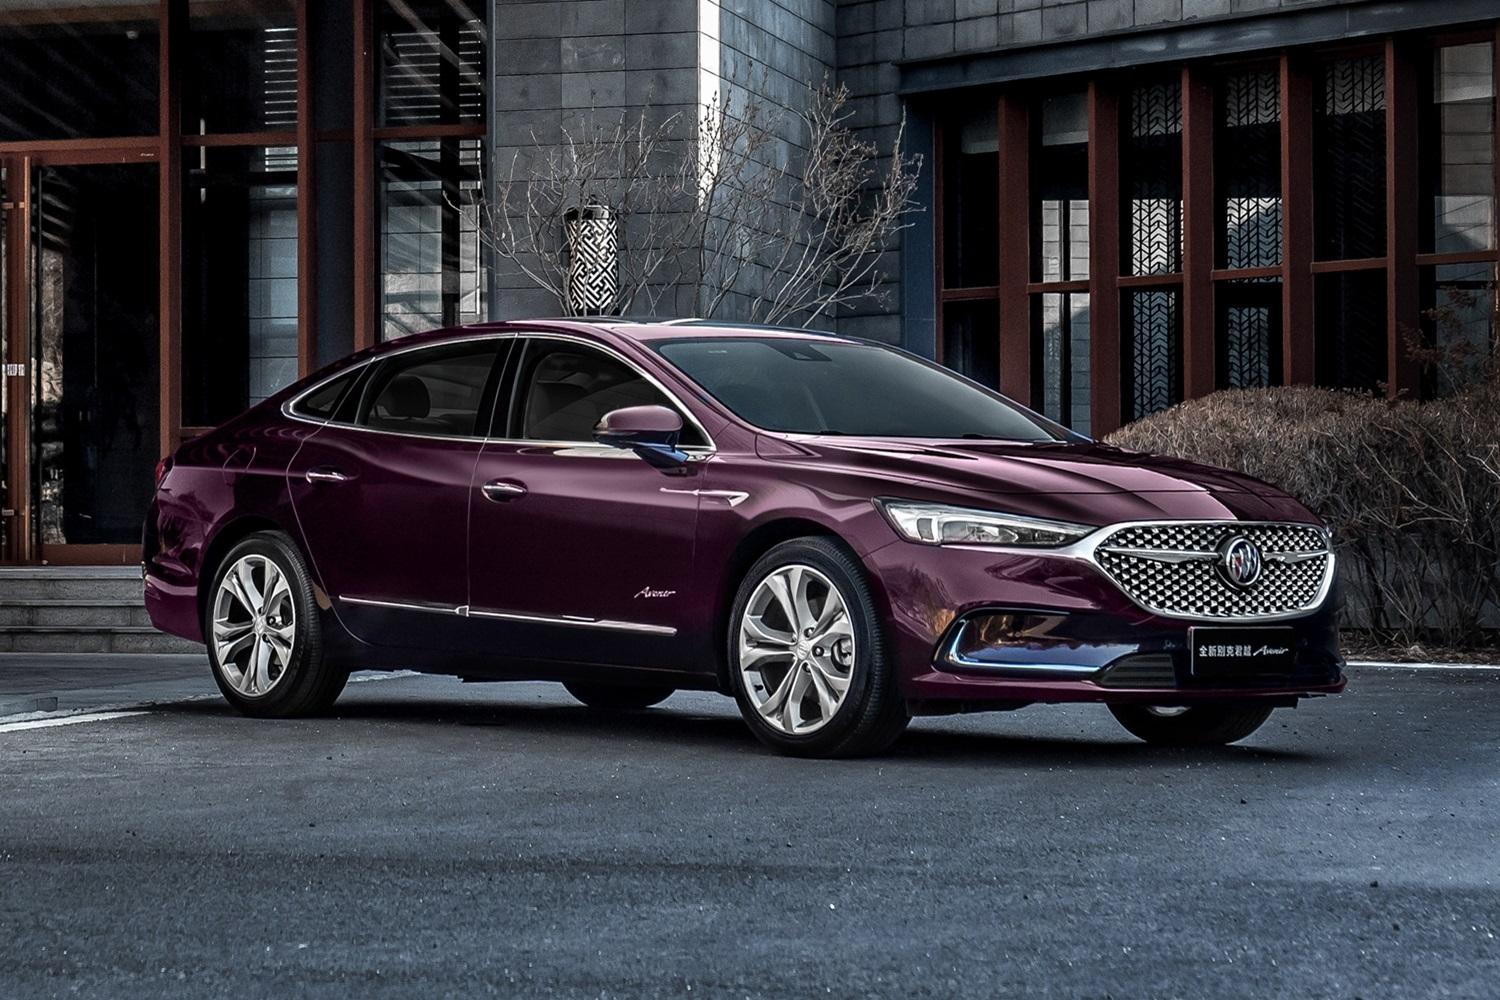 2021 Buick Lacrosse Gets More Refined Than Ever   Gm Authority New 2021 Buick Regal Production, Pictures, Price